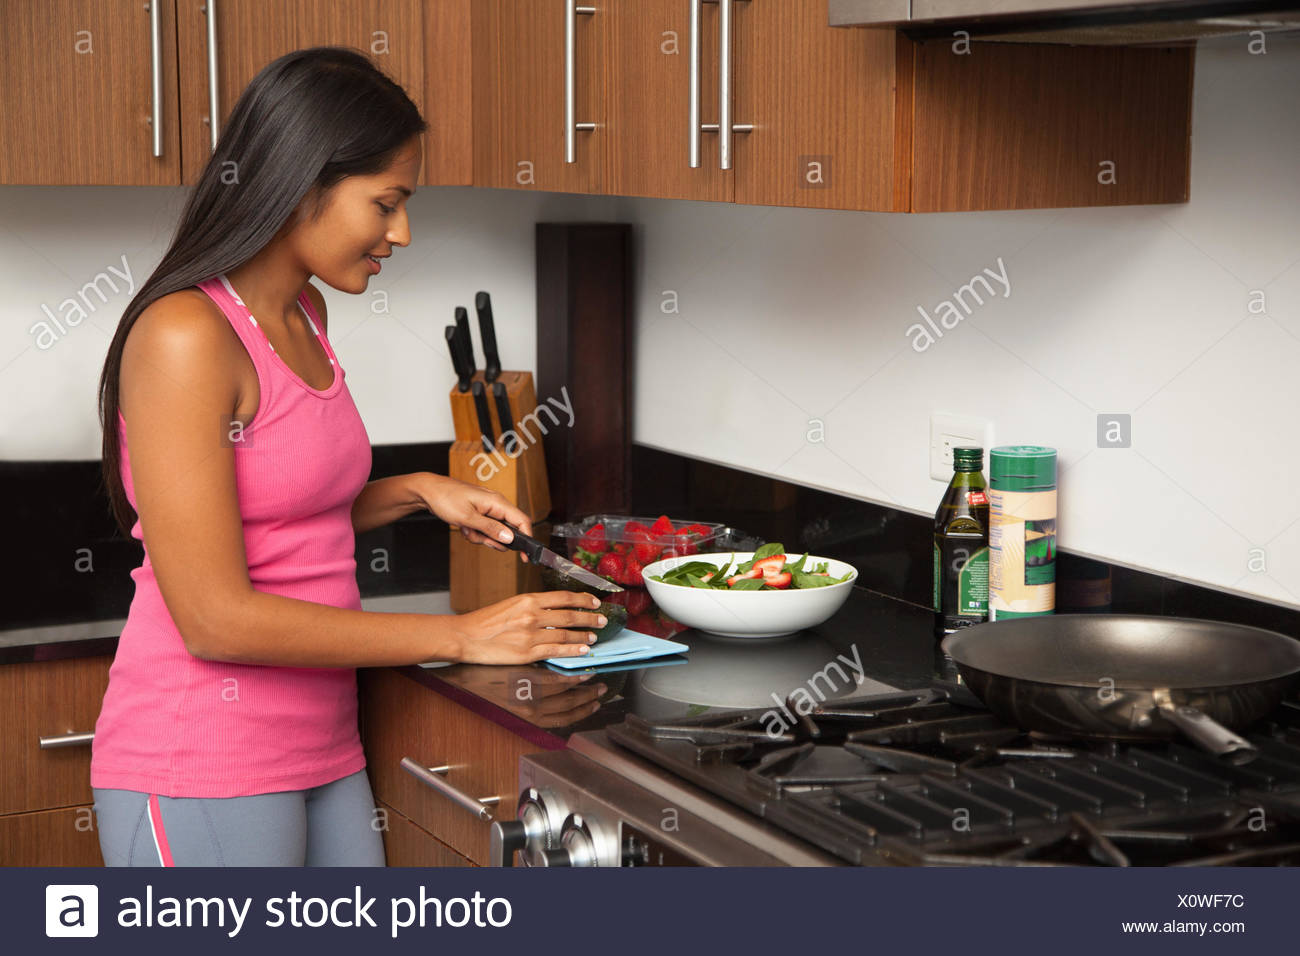 Woman preparing salad in kitchen Banque D'Images